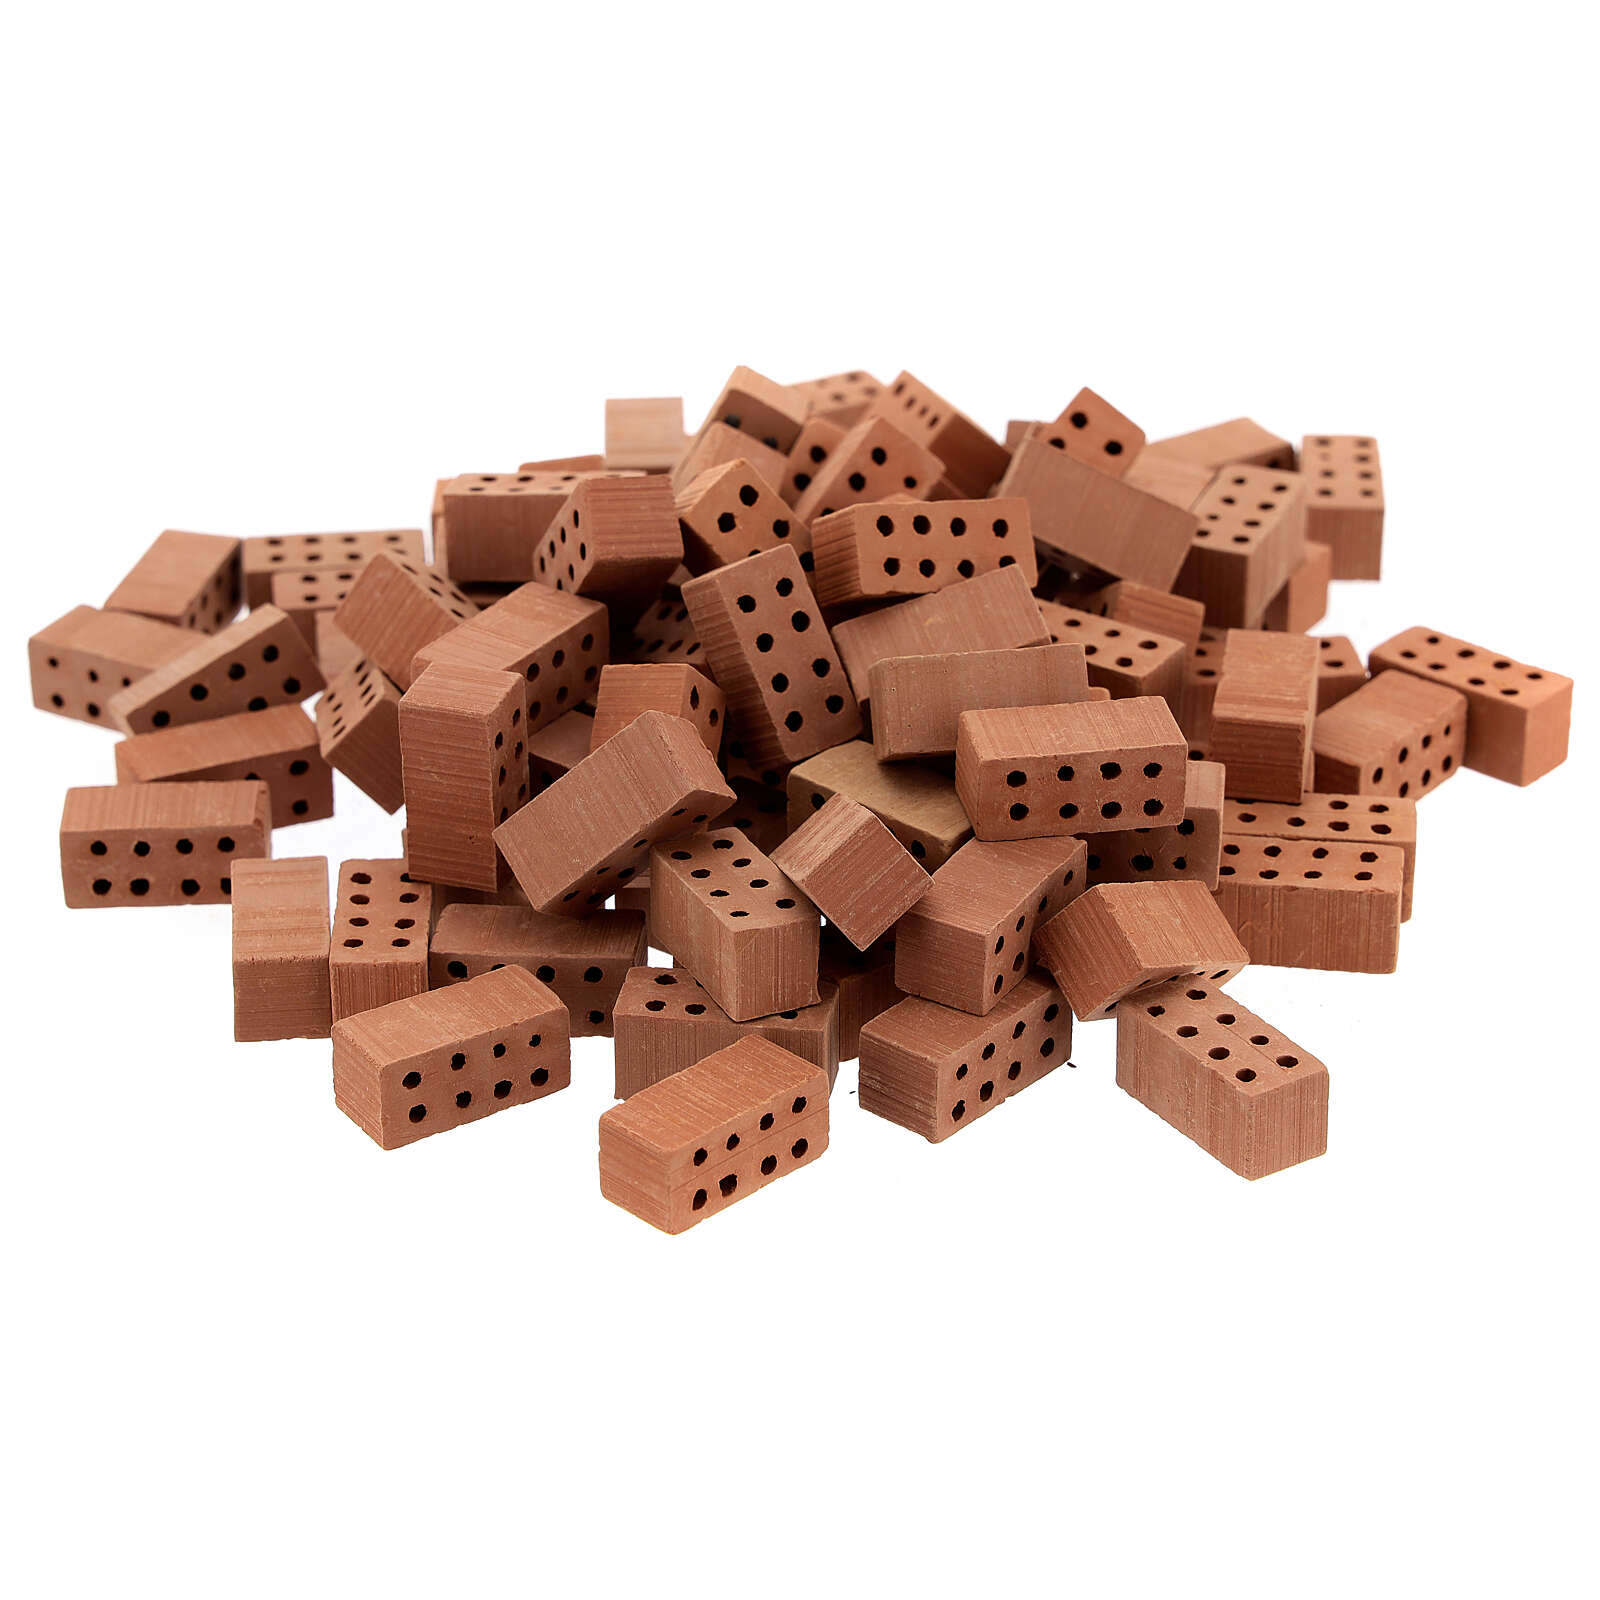 Rectangular bricks 1x2x1 cm 100 pieces 4